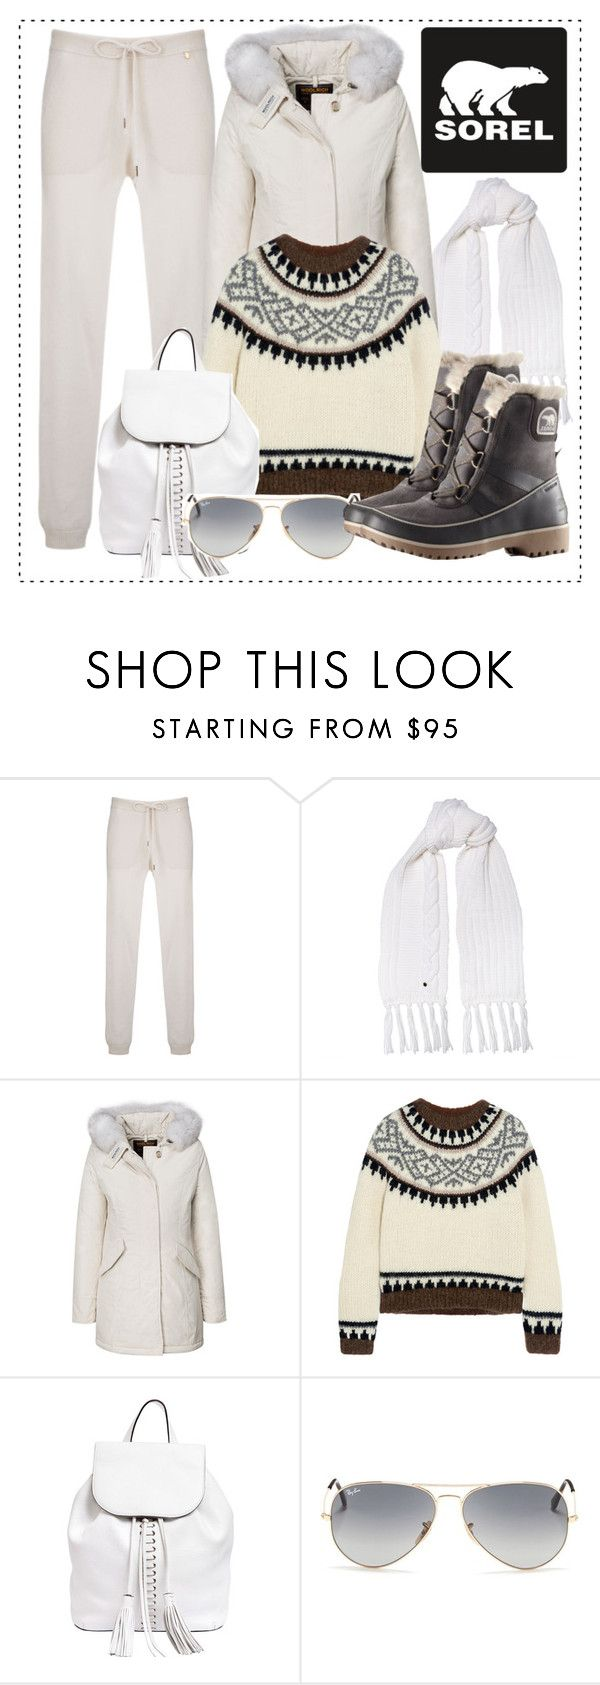 """Introducing the 2015 Winter Collection from SOREL: Contest Entry"" by alaria ❤ liked on Polyvore featuring Woolrich, SOREL, J.Crew, Rebecca Minkoff and Ray-Ban"